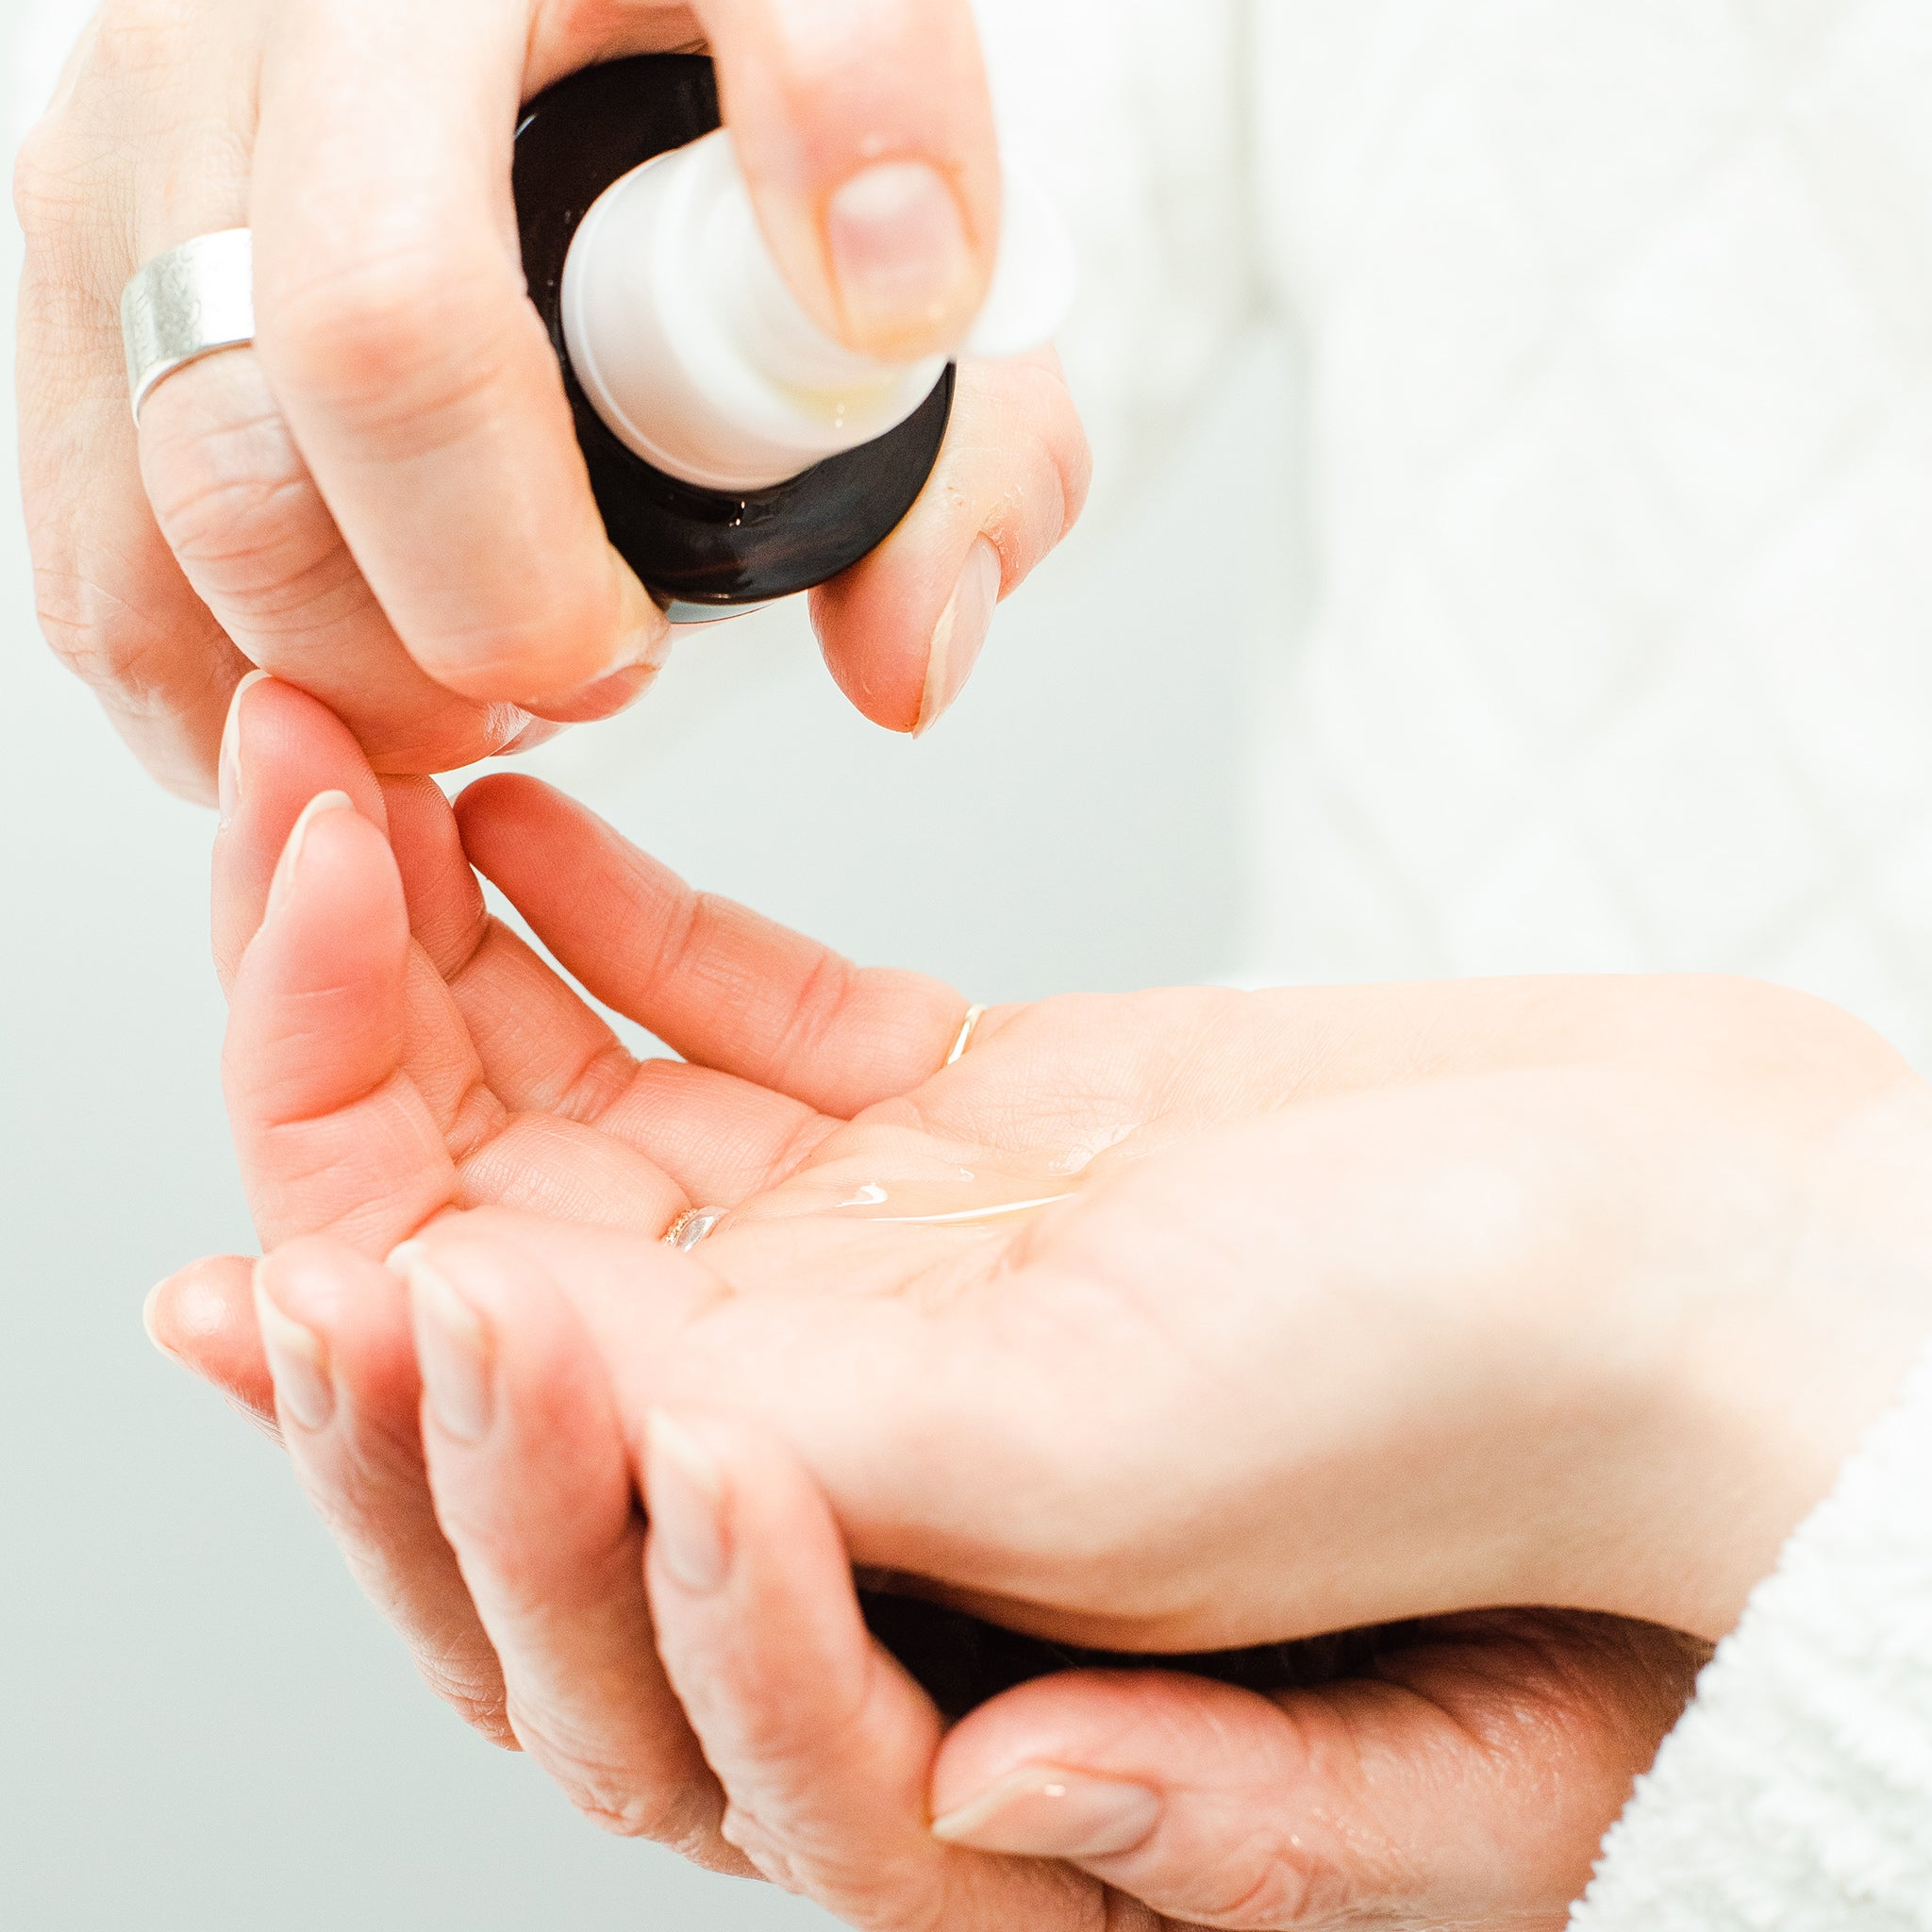 image of one hand pumping natural oil cleanser into the other hand.